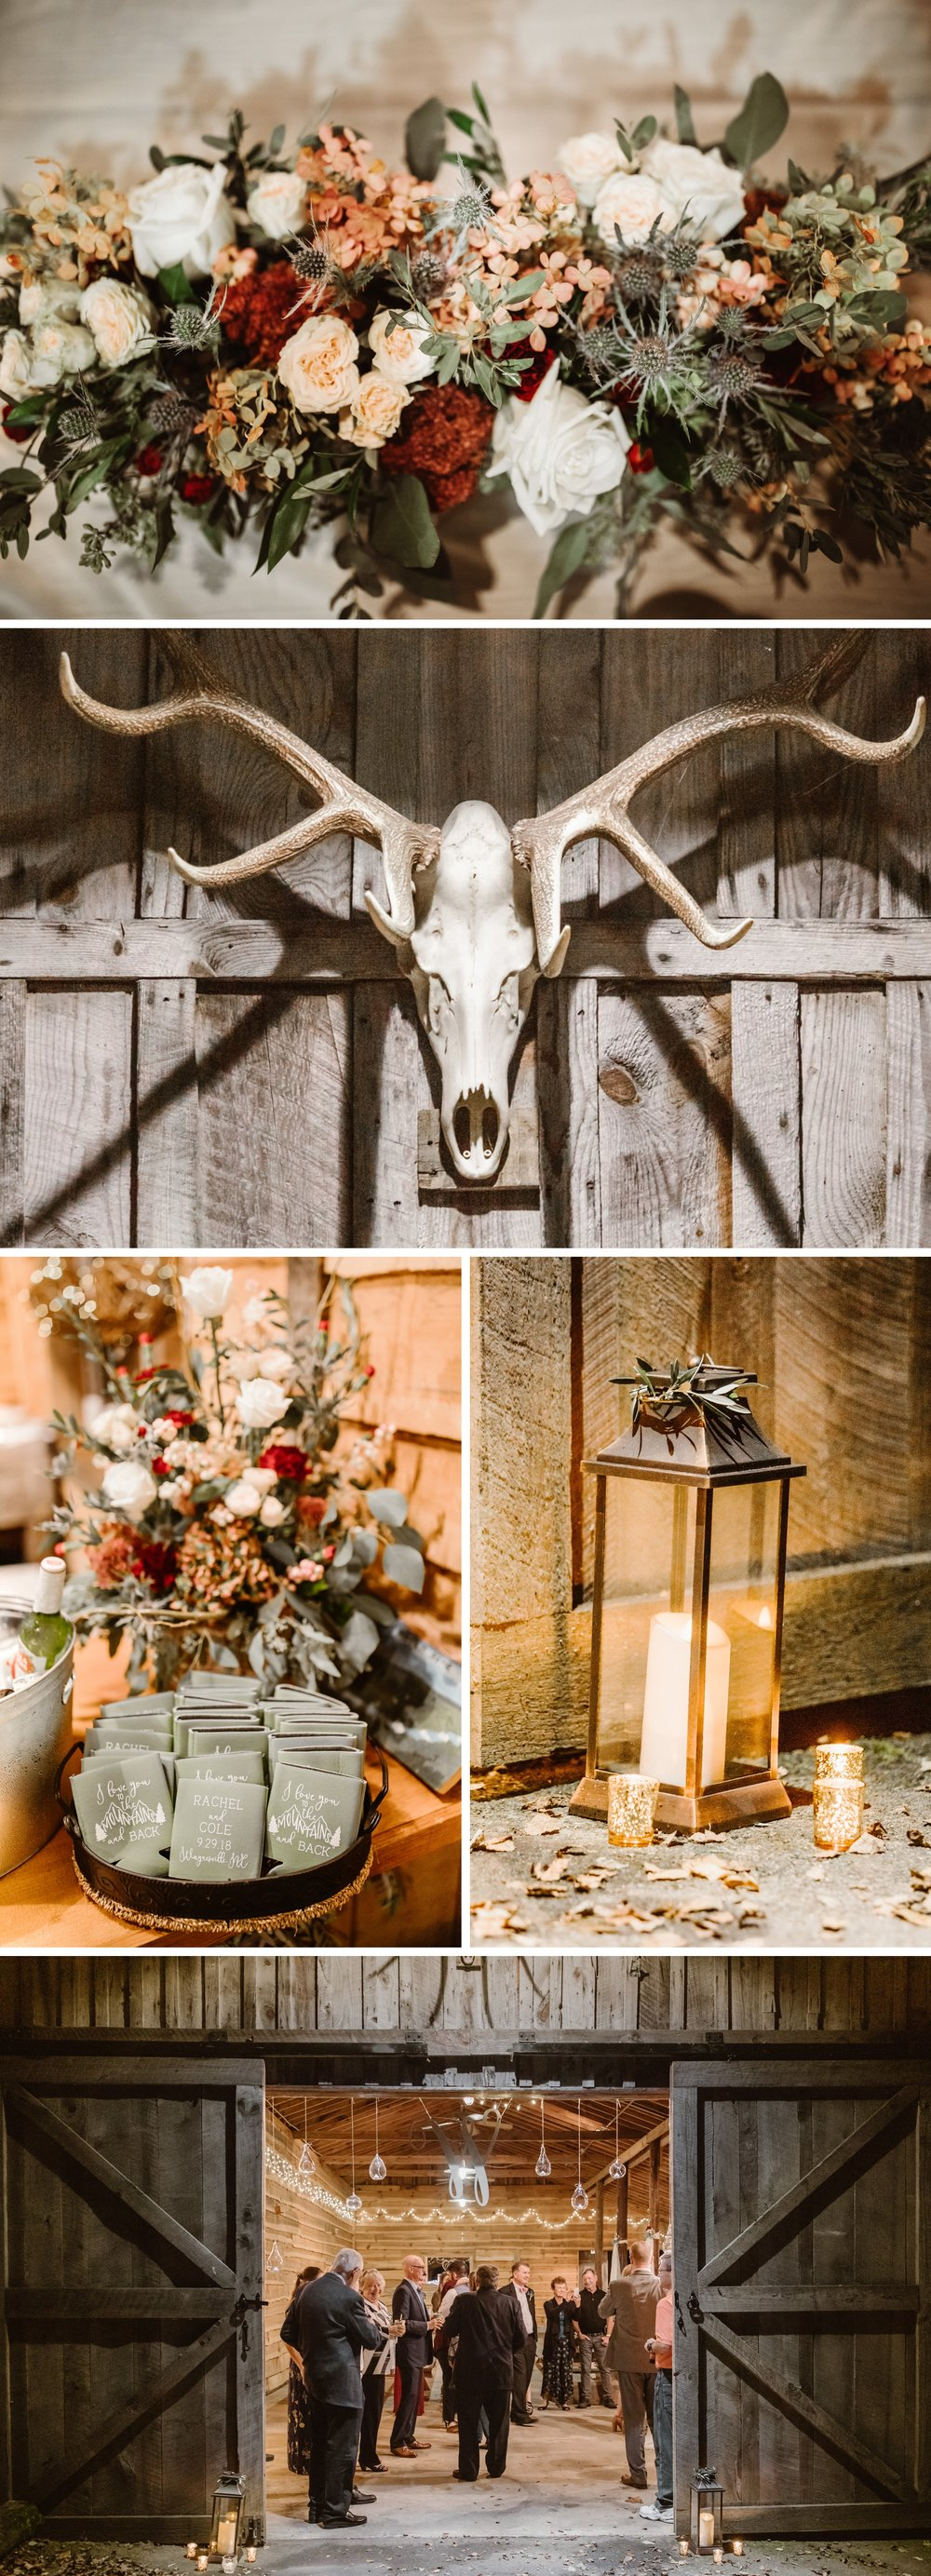 Asheville Mountain Barn Elopement Reception- Cole + Rachel- Shaina DeCiryan Photography1.jpg